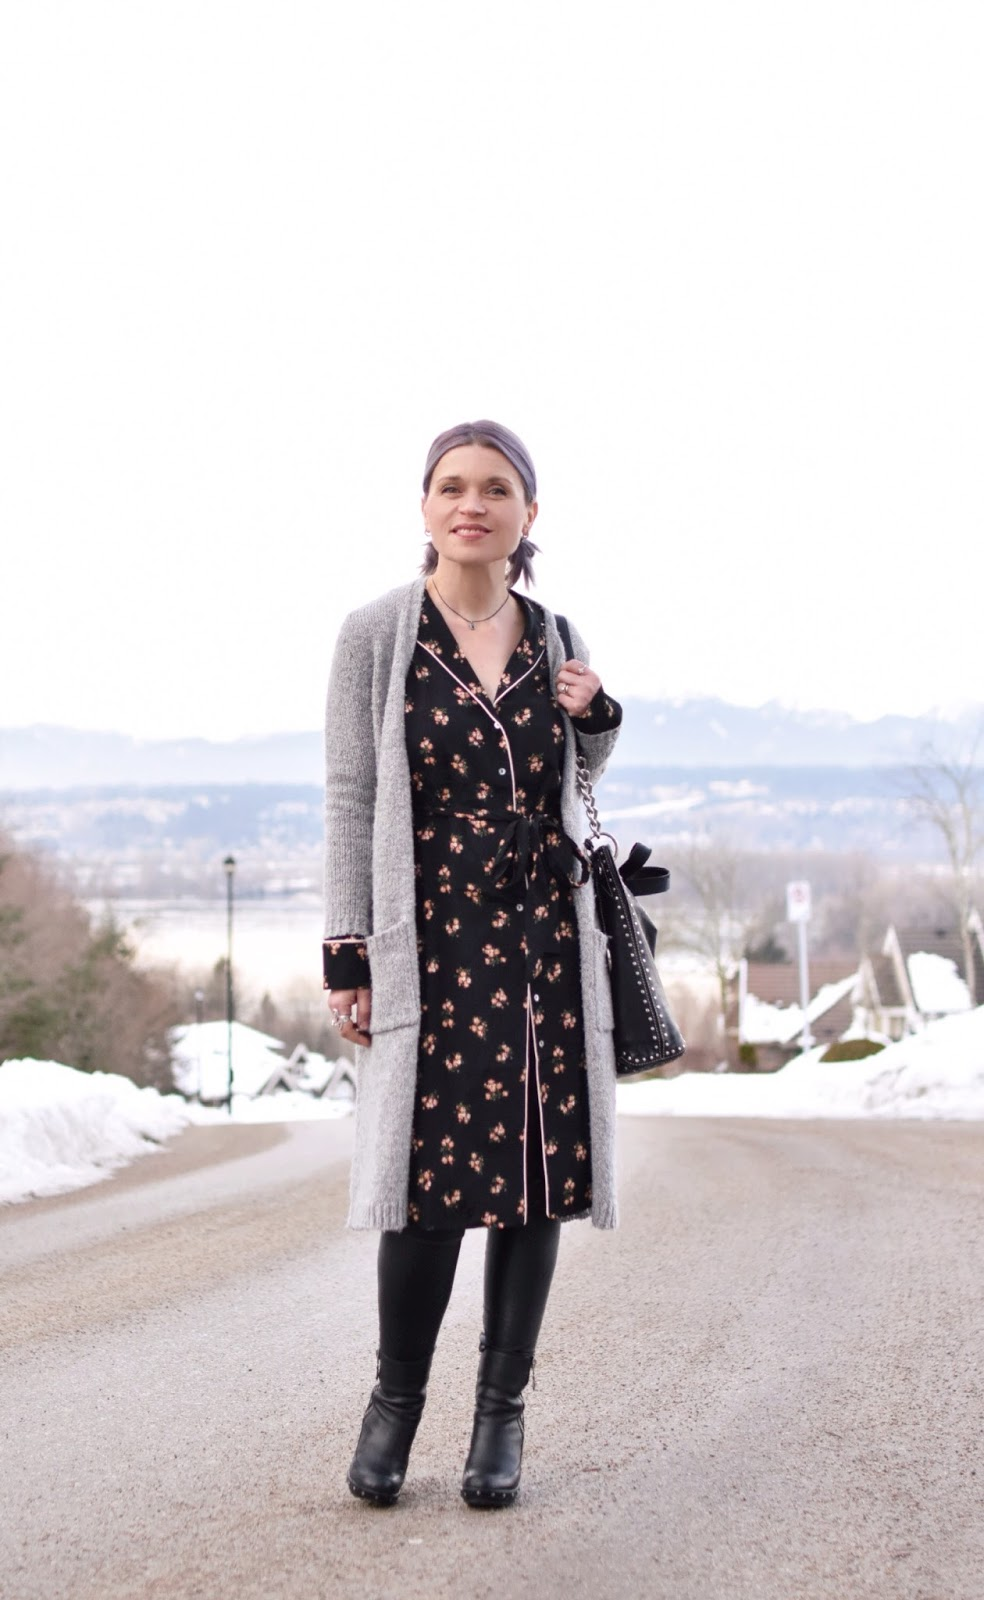 Monika Faulkner outfit inspiration - styling a pyjama-style shirtdress with a long cardigan, pleather leggings, and platform booties